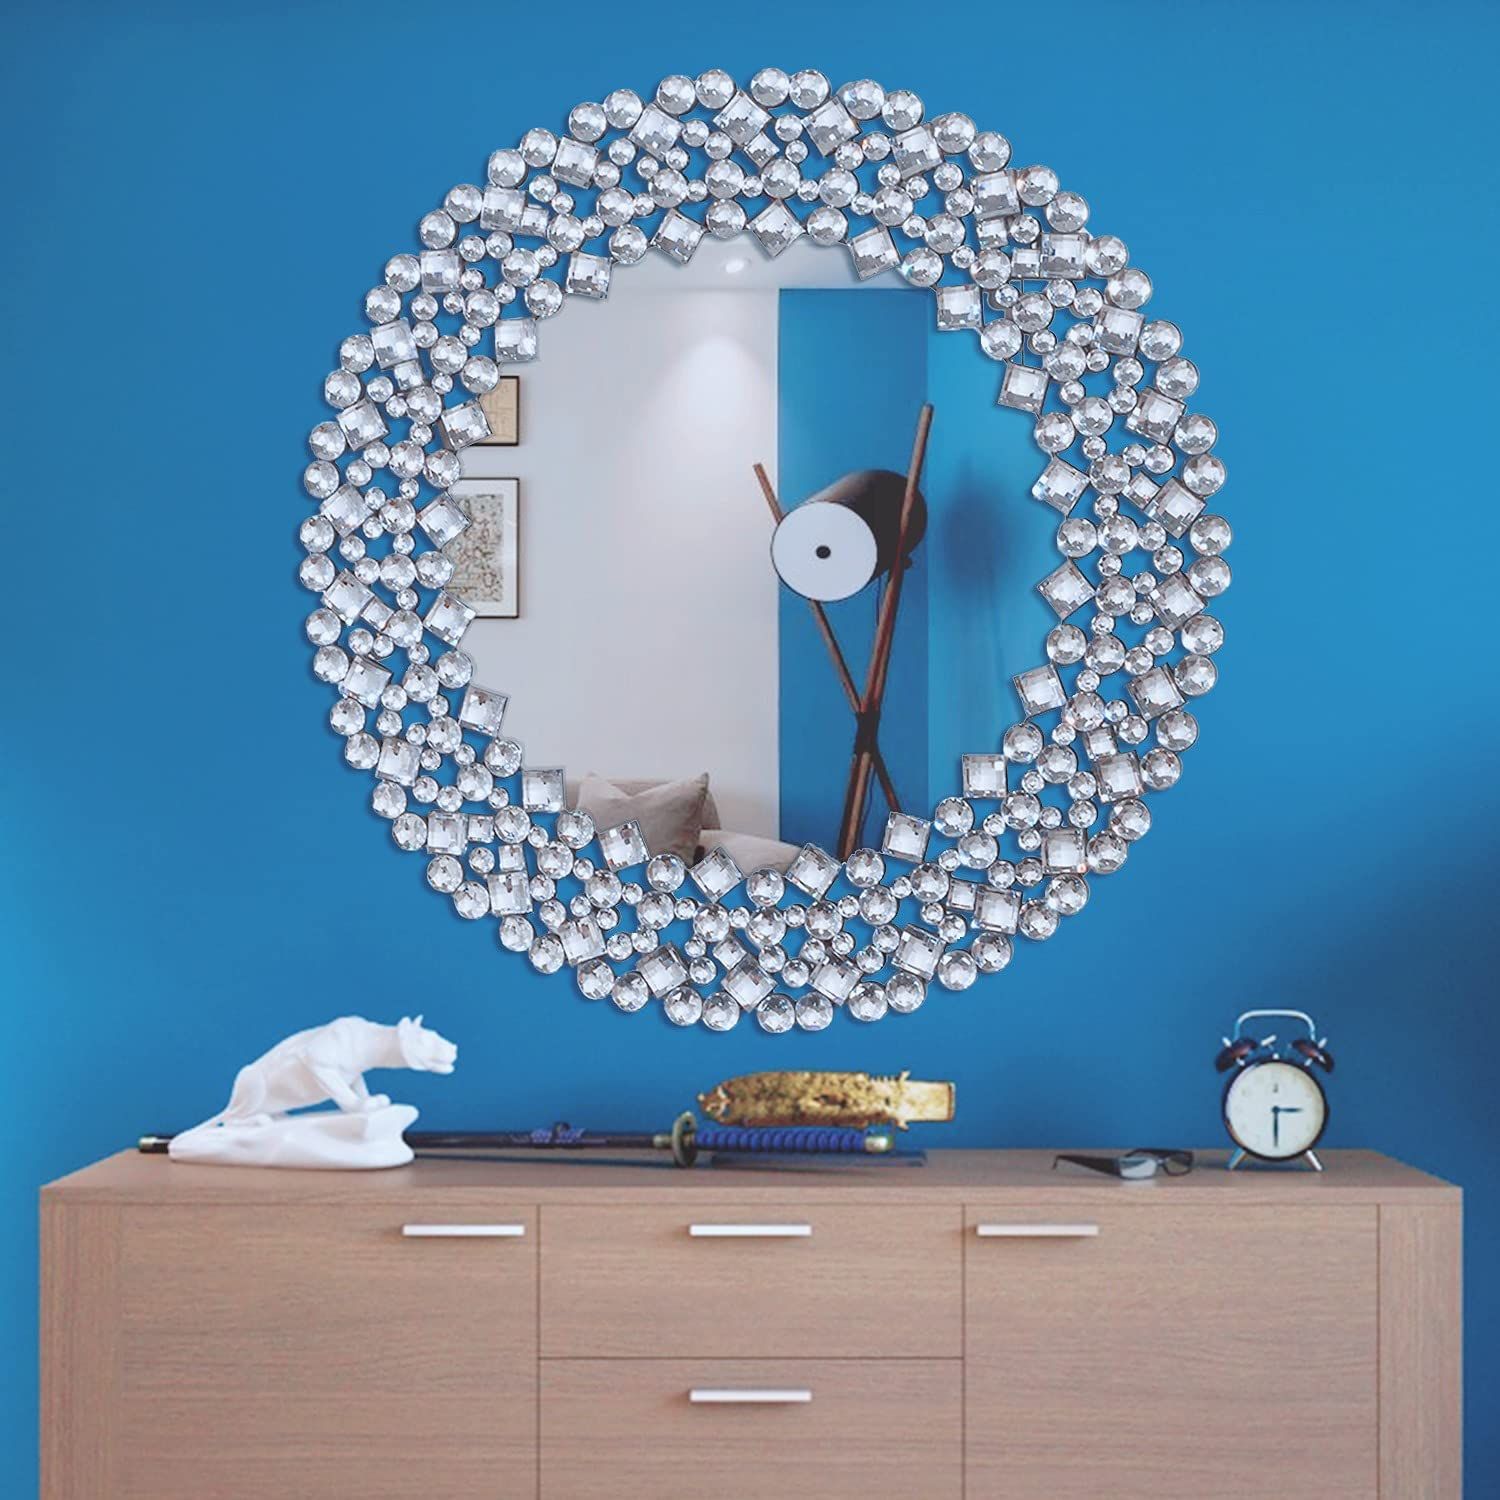 SHYFOY Large Round Decorative Mirrors for Wall Decor, Antique Venetian Ornate Modern Accent Mirror for Bedroom, Bathroom, Living Room, Foyer (35.5